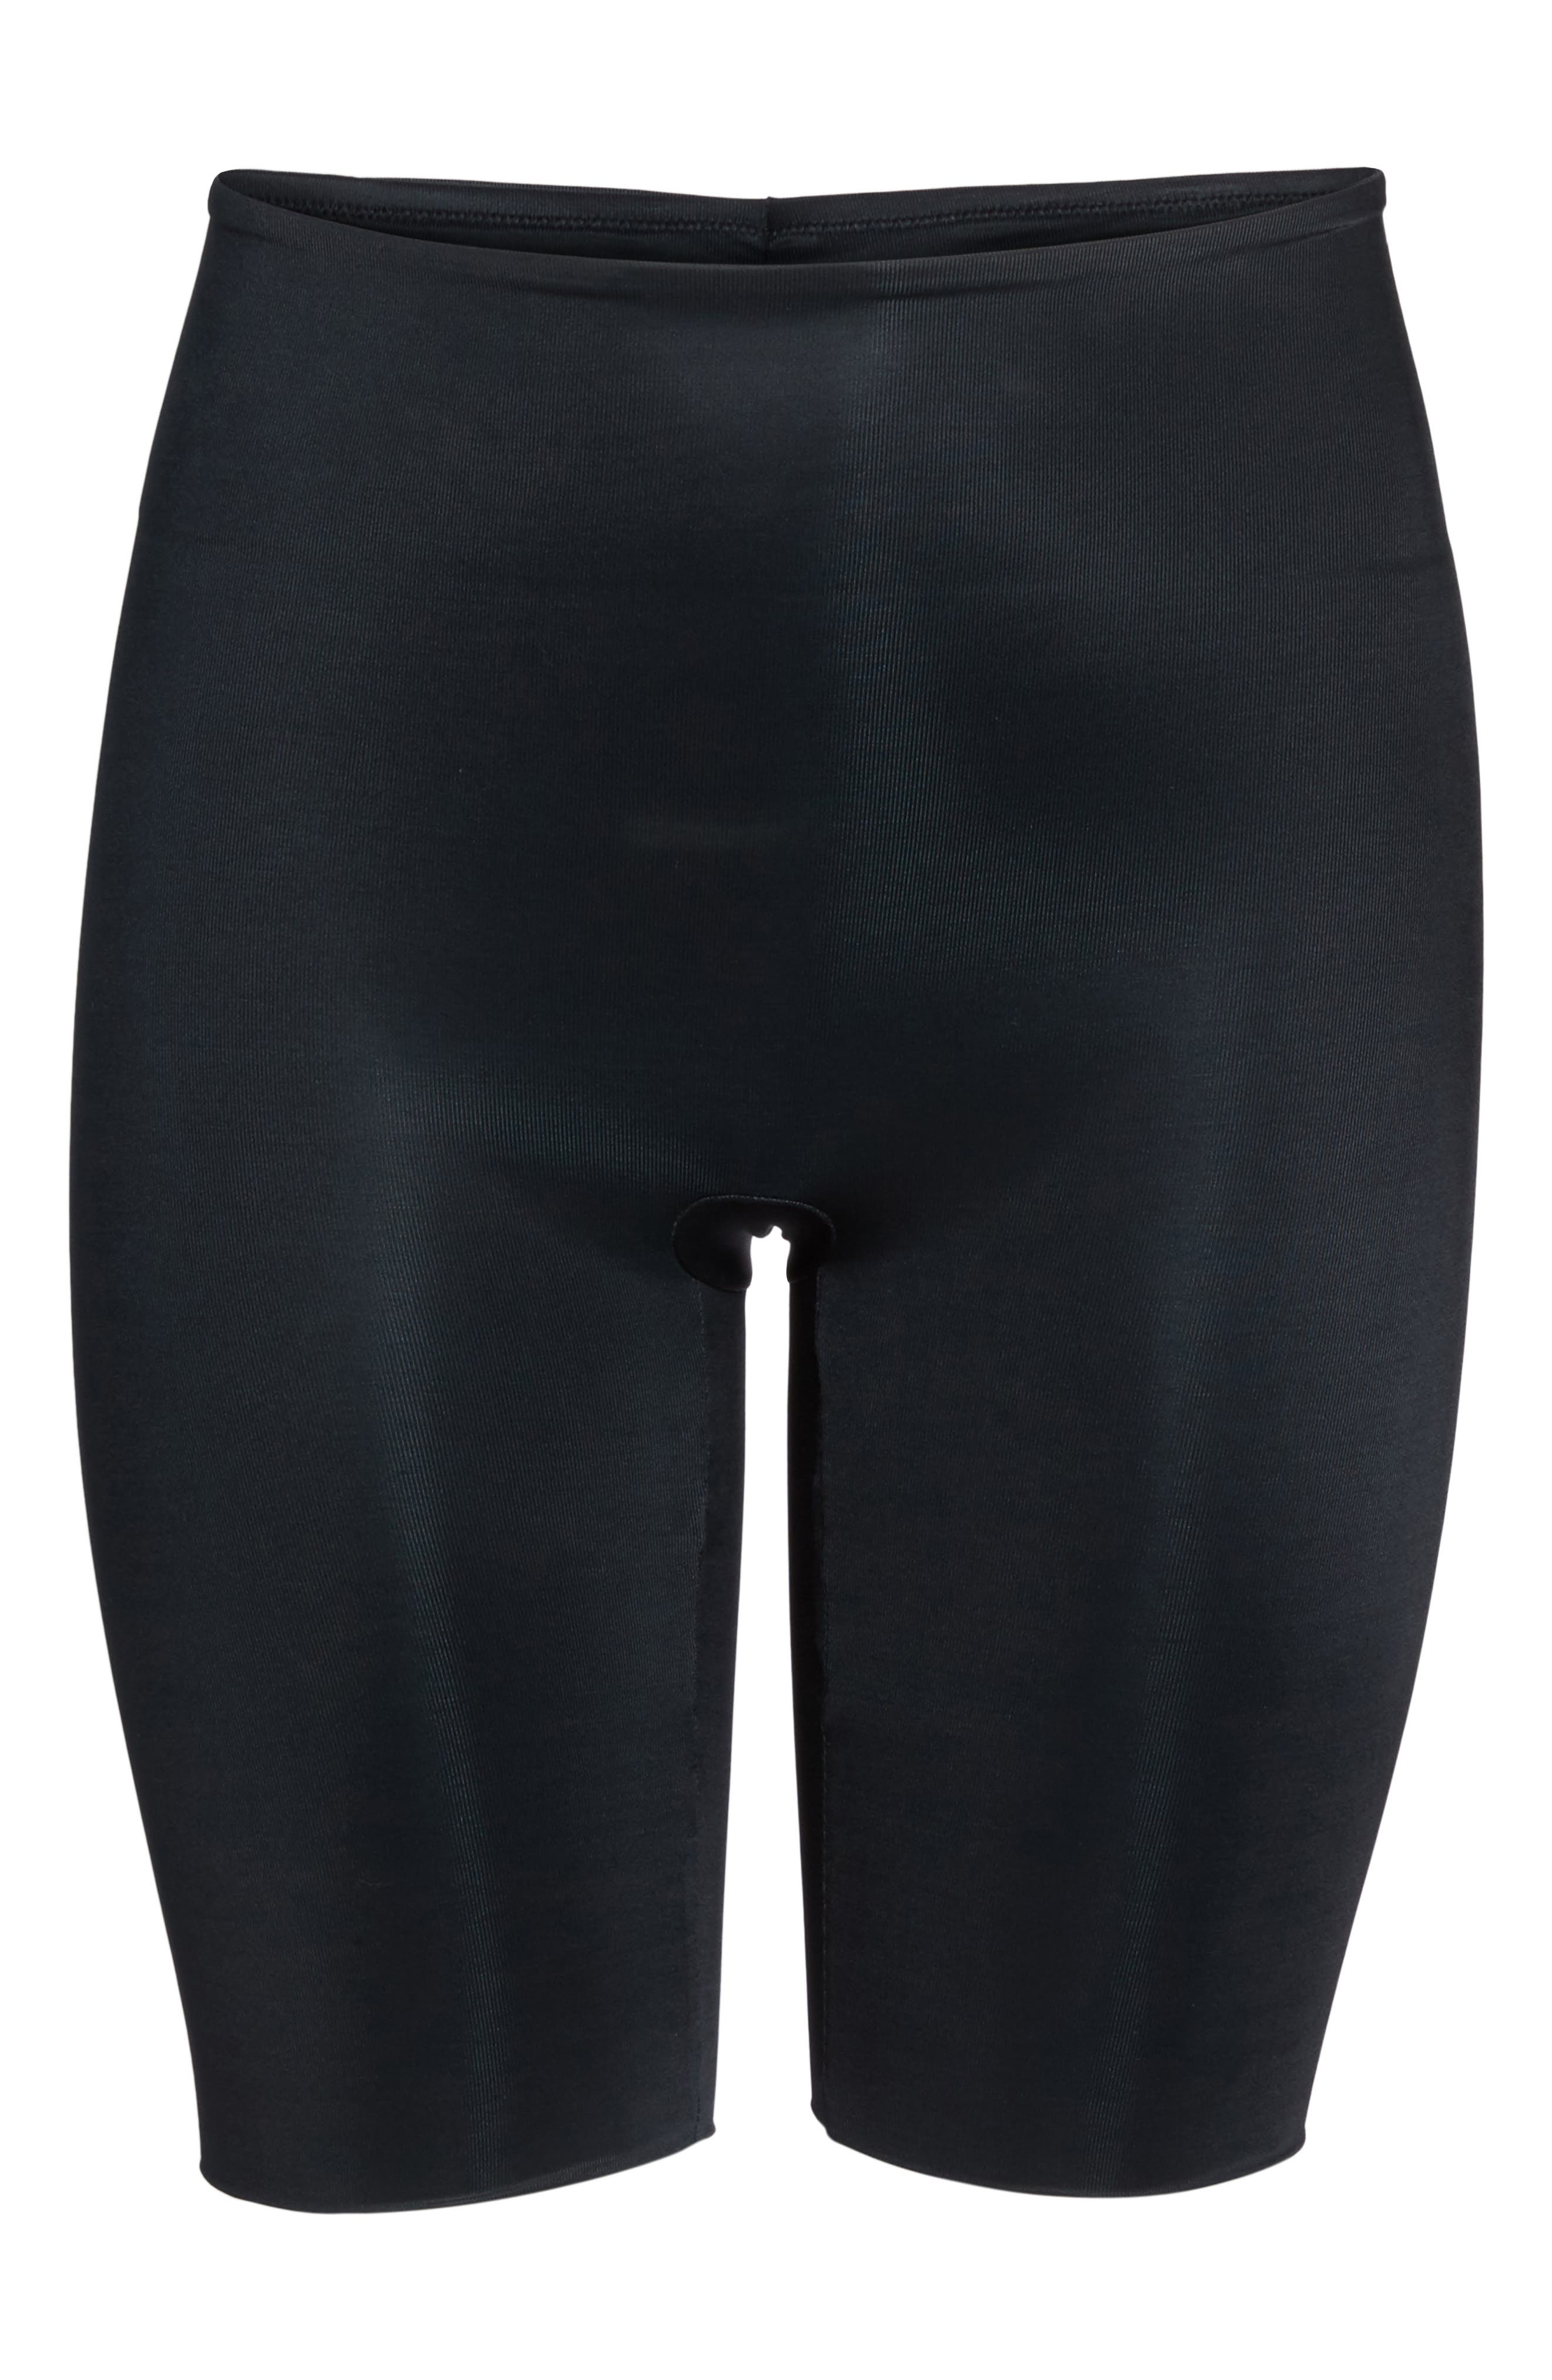 Power Conceal-Her Mid-Thigh Shorts,                             Alternate thumbnail 5, color,                             019